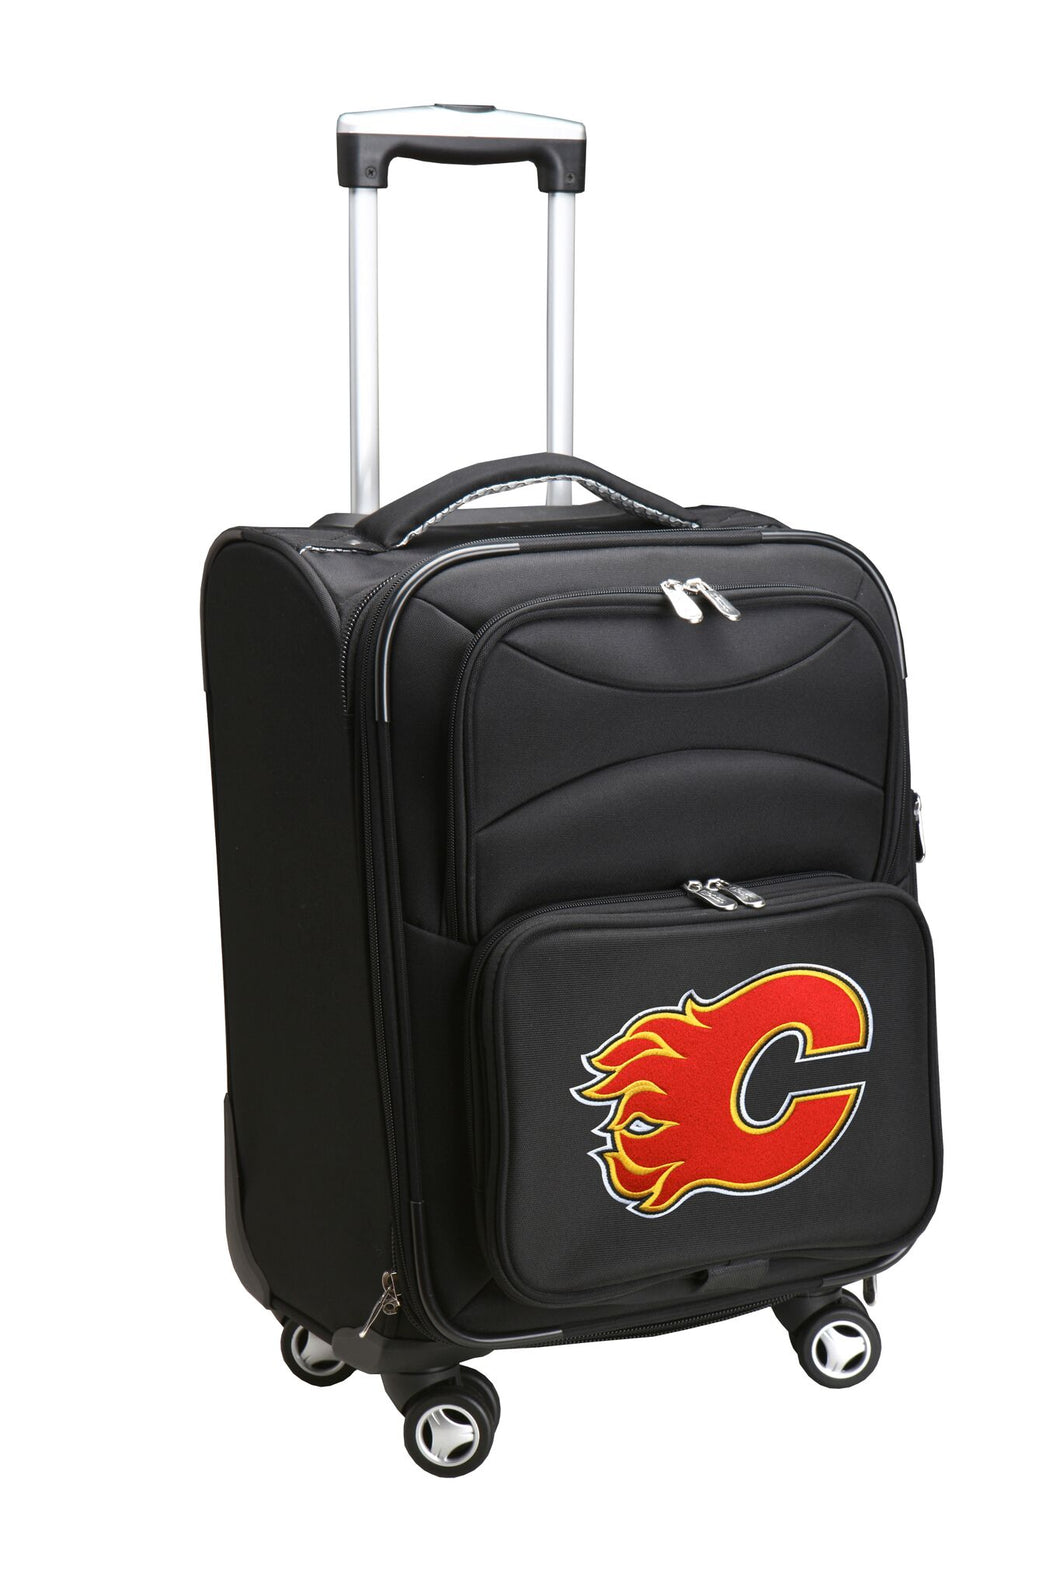 Calgary Flames Luggage Carry-On 21in Spinner Softside Nylon